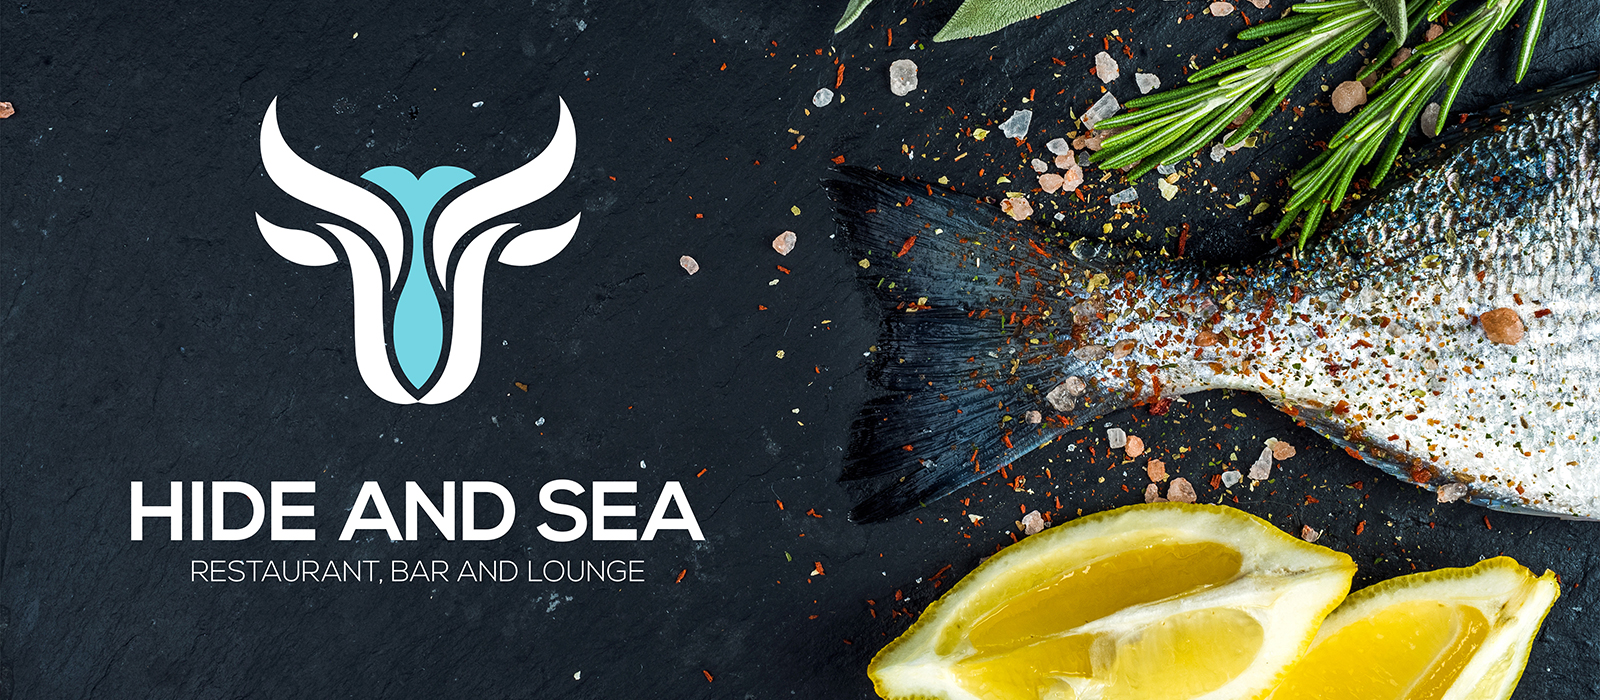 Hide and Sea - Branding